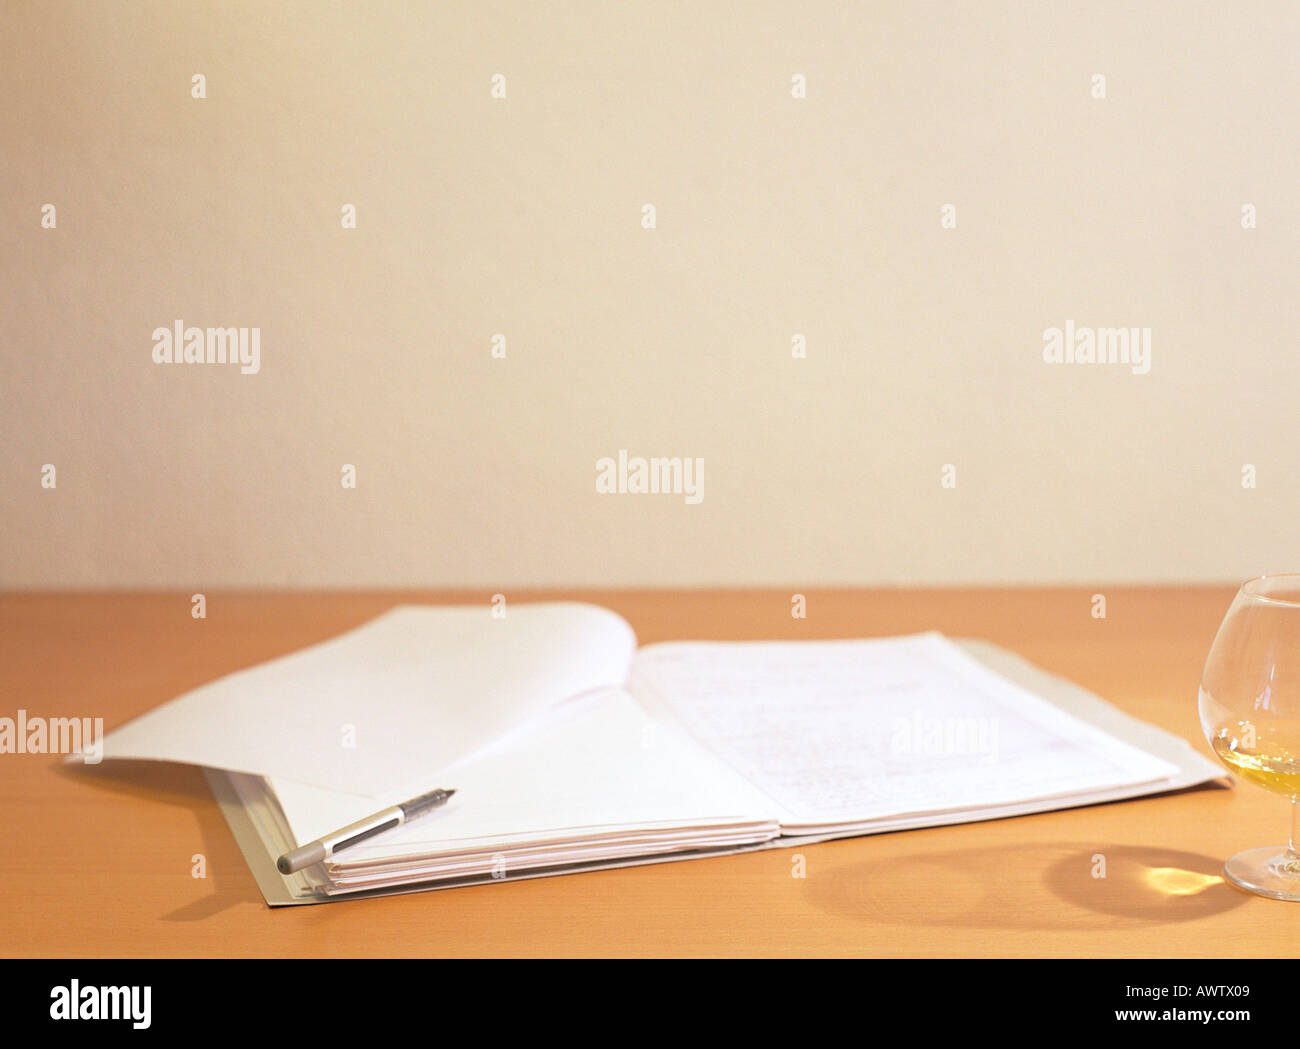 Pen and open book on desk next to glass - Stock Image